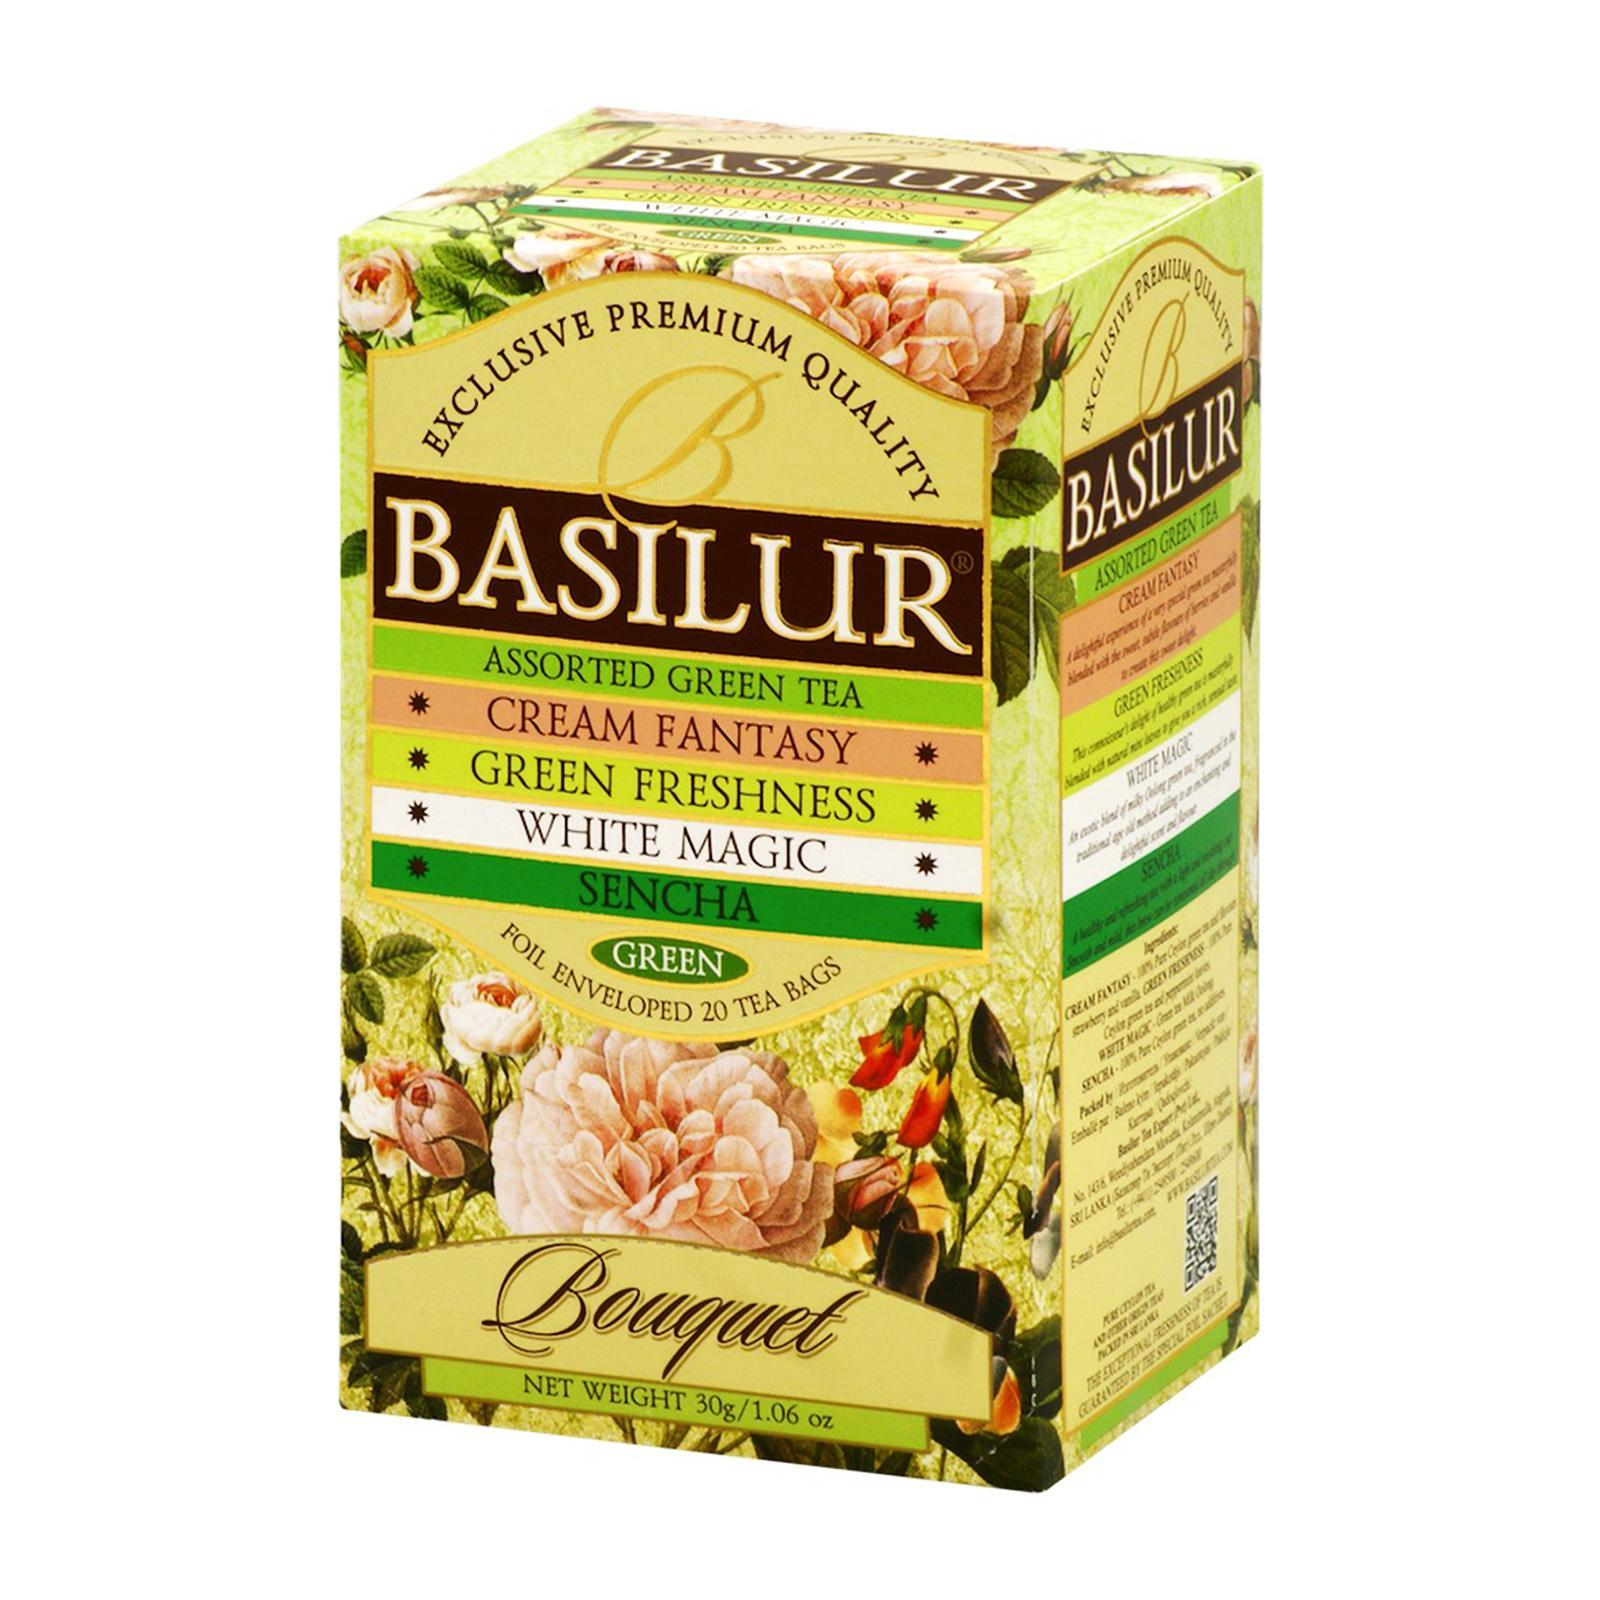 Basilur Tea Bouquet Assorted Green Tea